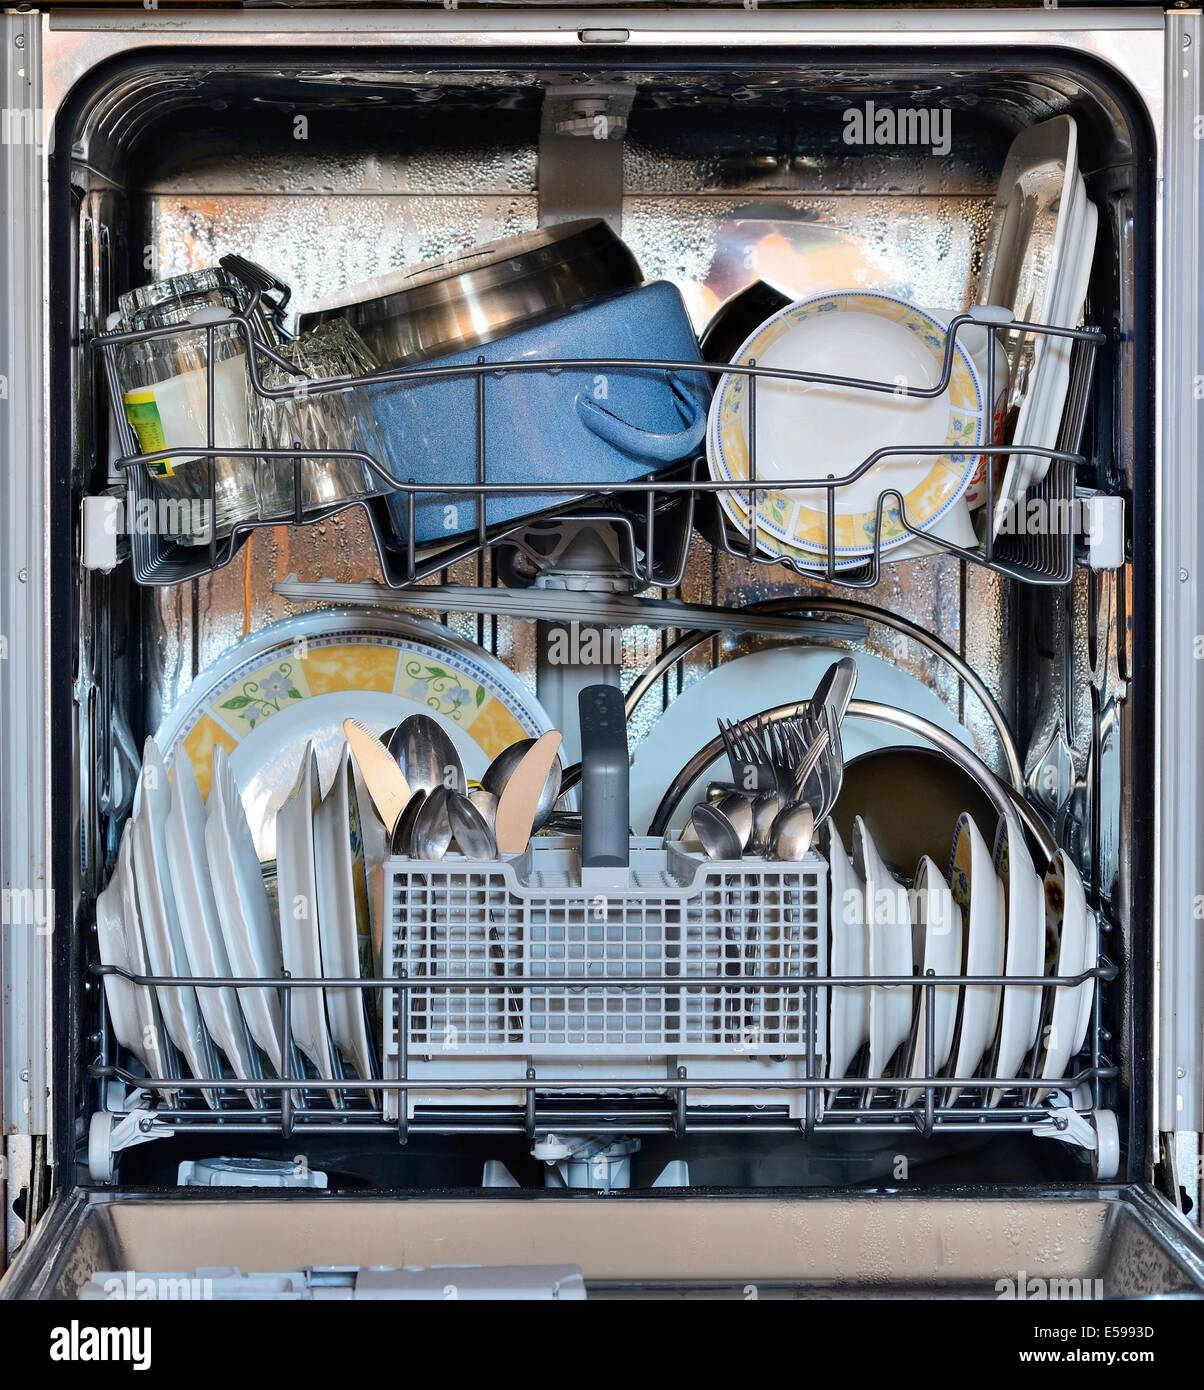 Open the front door of the dishwasher full of clean dishes Stock ...